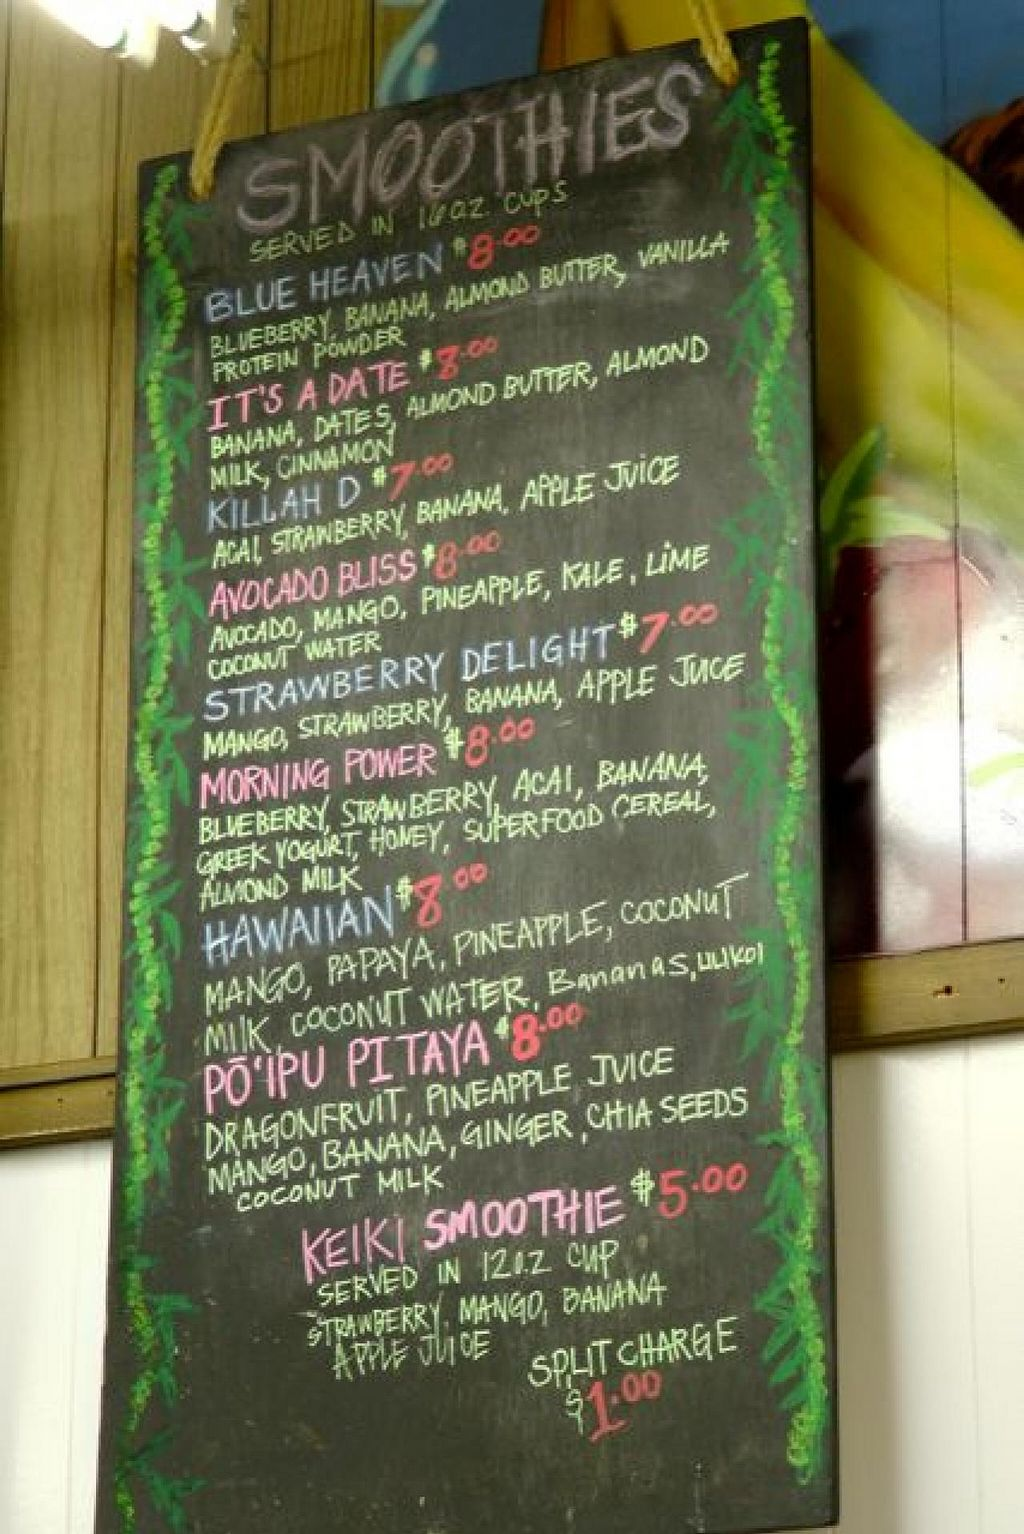 """Photo of Aloha 'Aina Juice Cafe  by <a href=""""/members/profile/trinitybourne"""">trinitybourne</a> <br/>Great choice of quality smoothies <br/> February 14, 2015  - <a href='/contact/abuse/image/35649/93000'>Report</a>"""